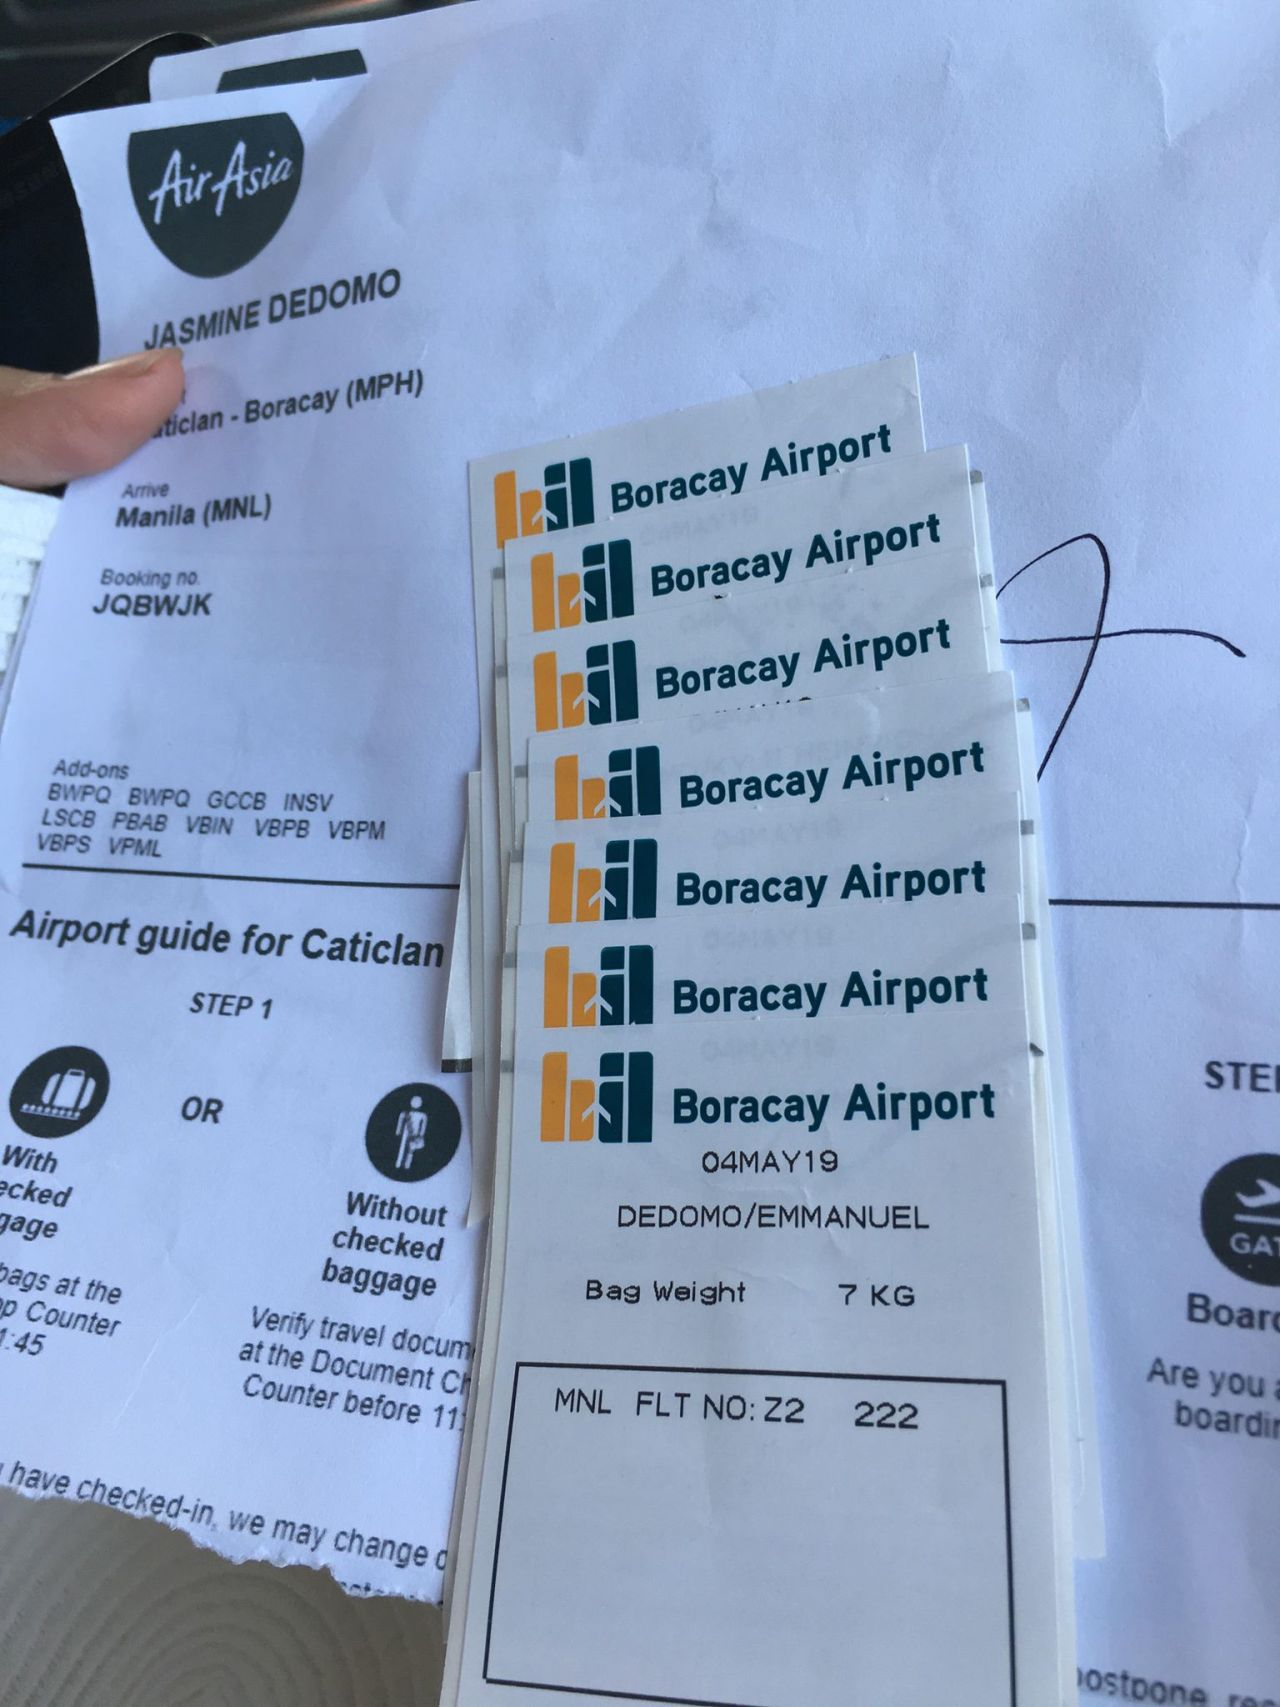 boarding passes back to Manila